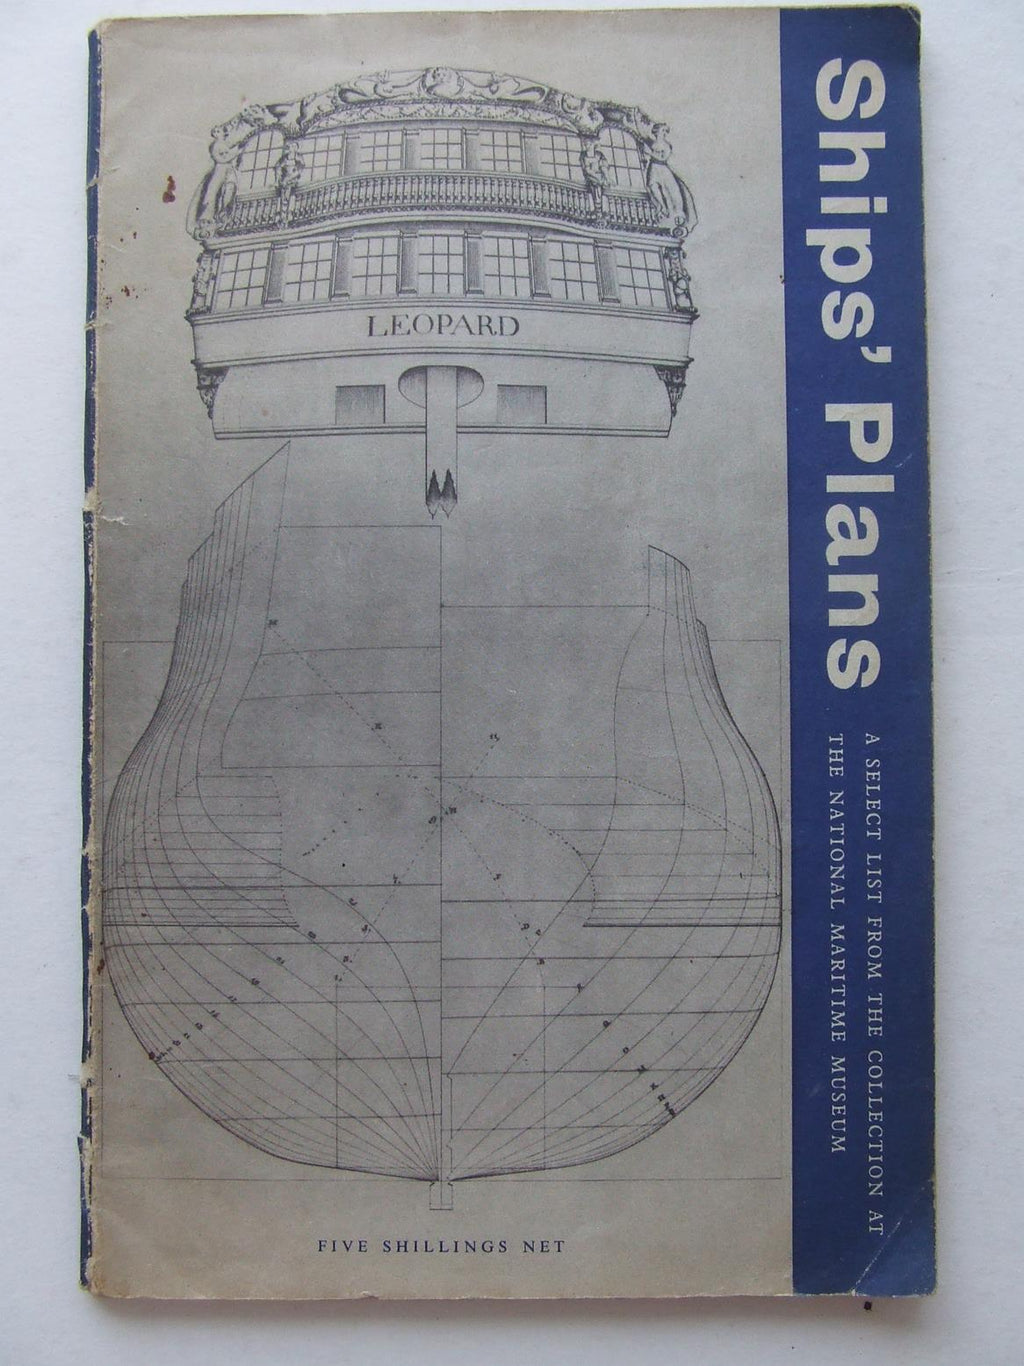 Ships' plans, a select list from the collection at the National Maritime Museum